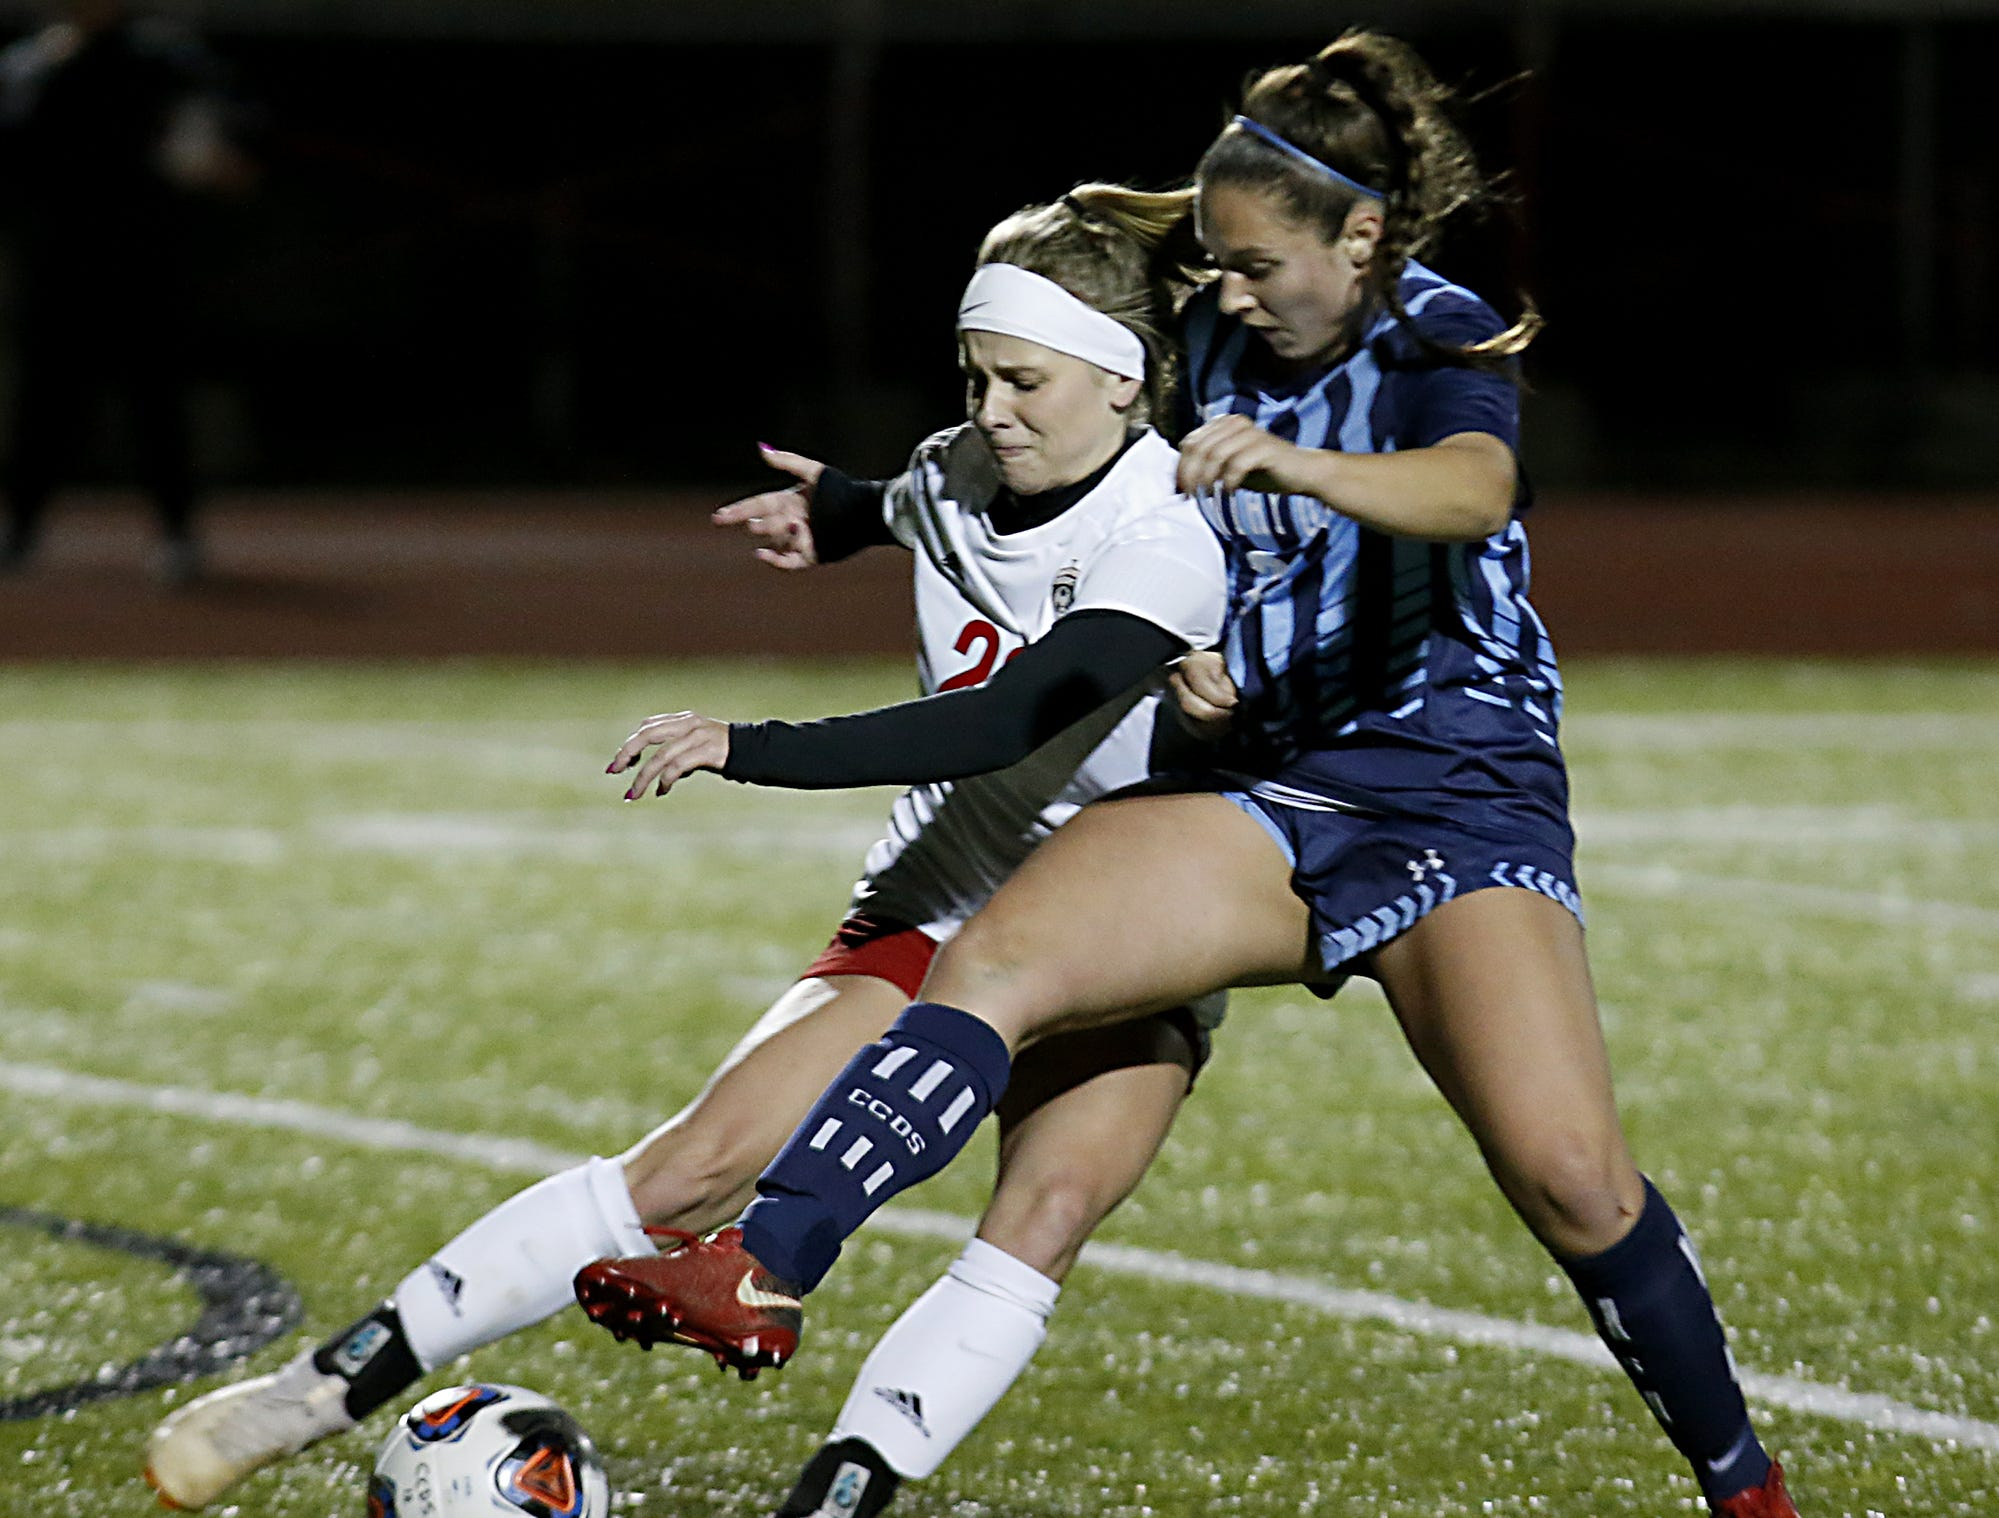 Cincinnati Country Day midfielder Chloe Webb tries to make a play on Bishop Rosecrans midfielder Claire Creeks during their girls division III state semifinal at London Tuesday, Nov. 6, 2018.